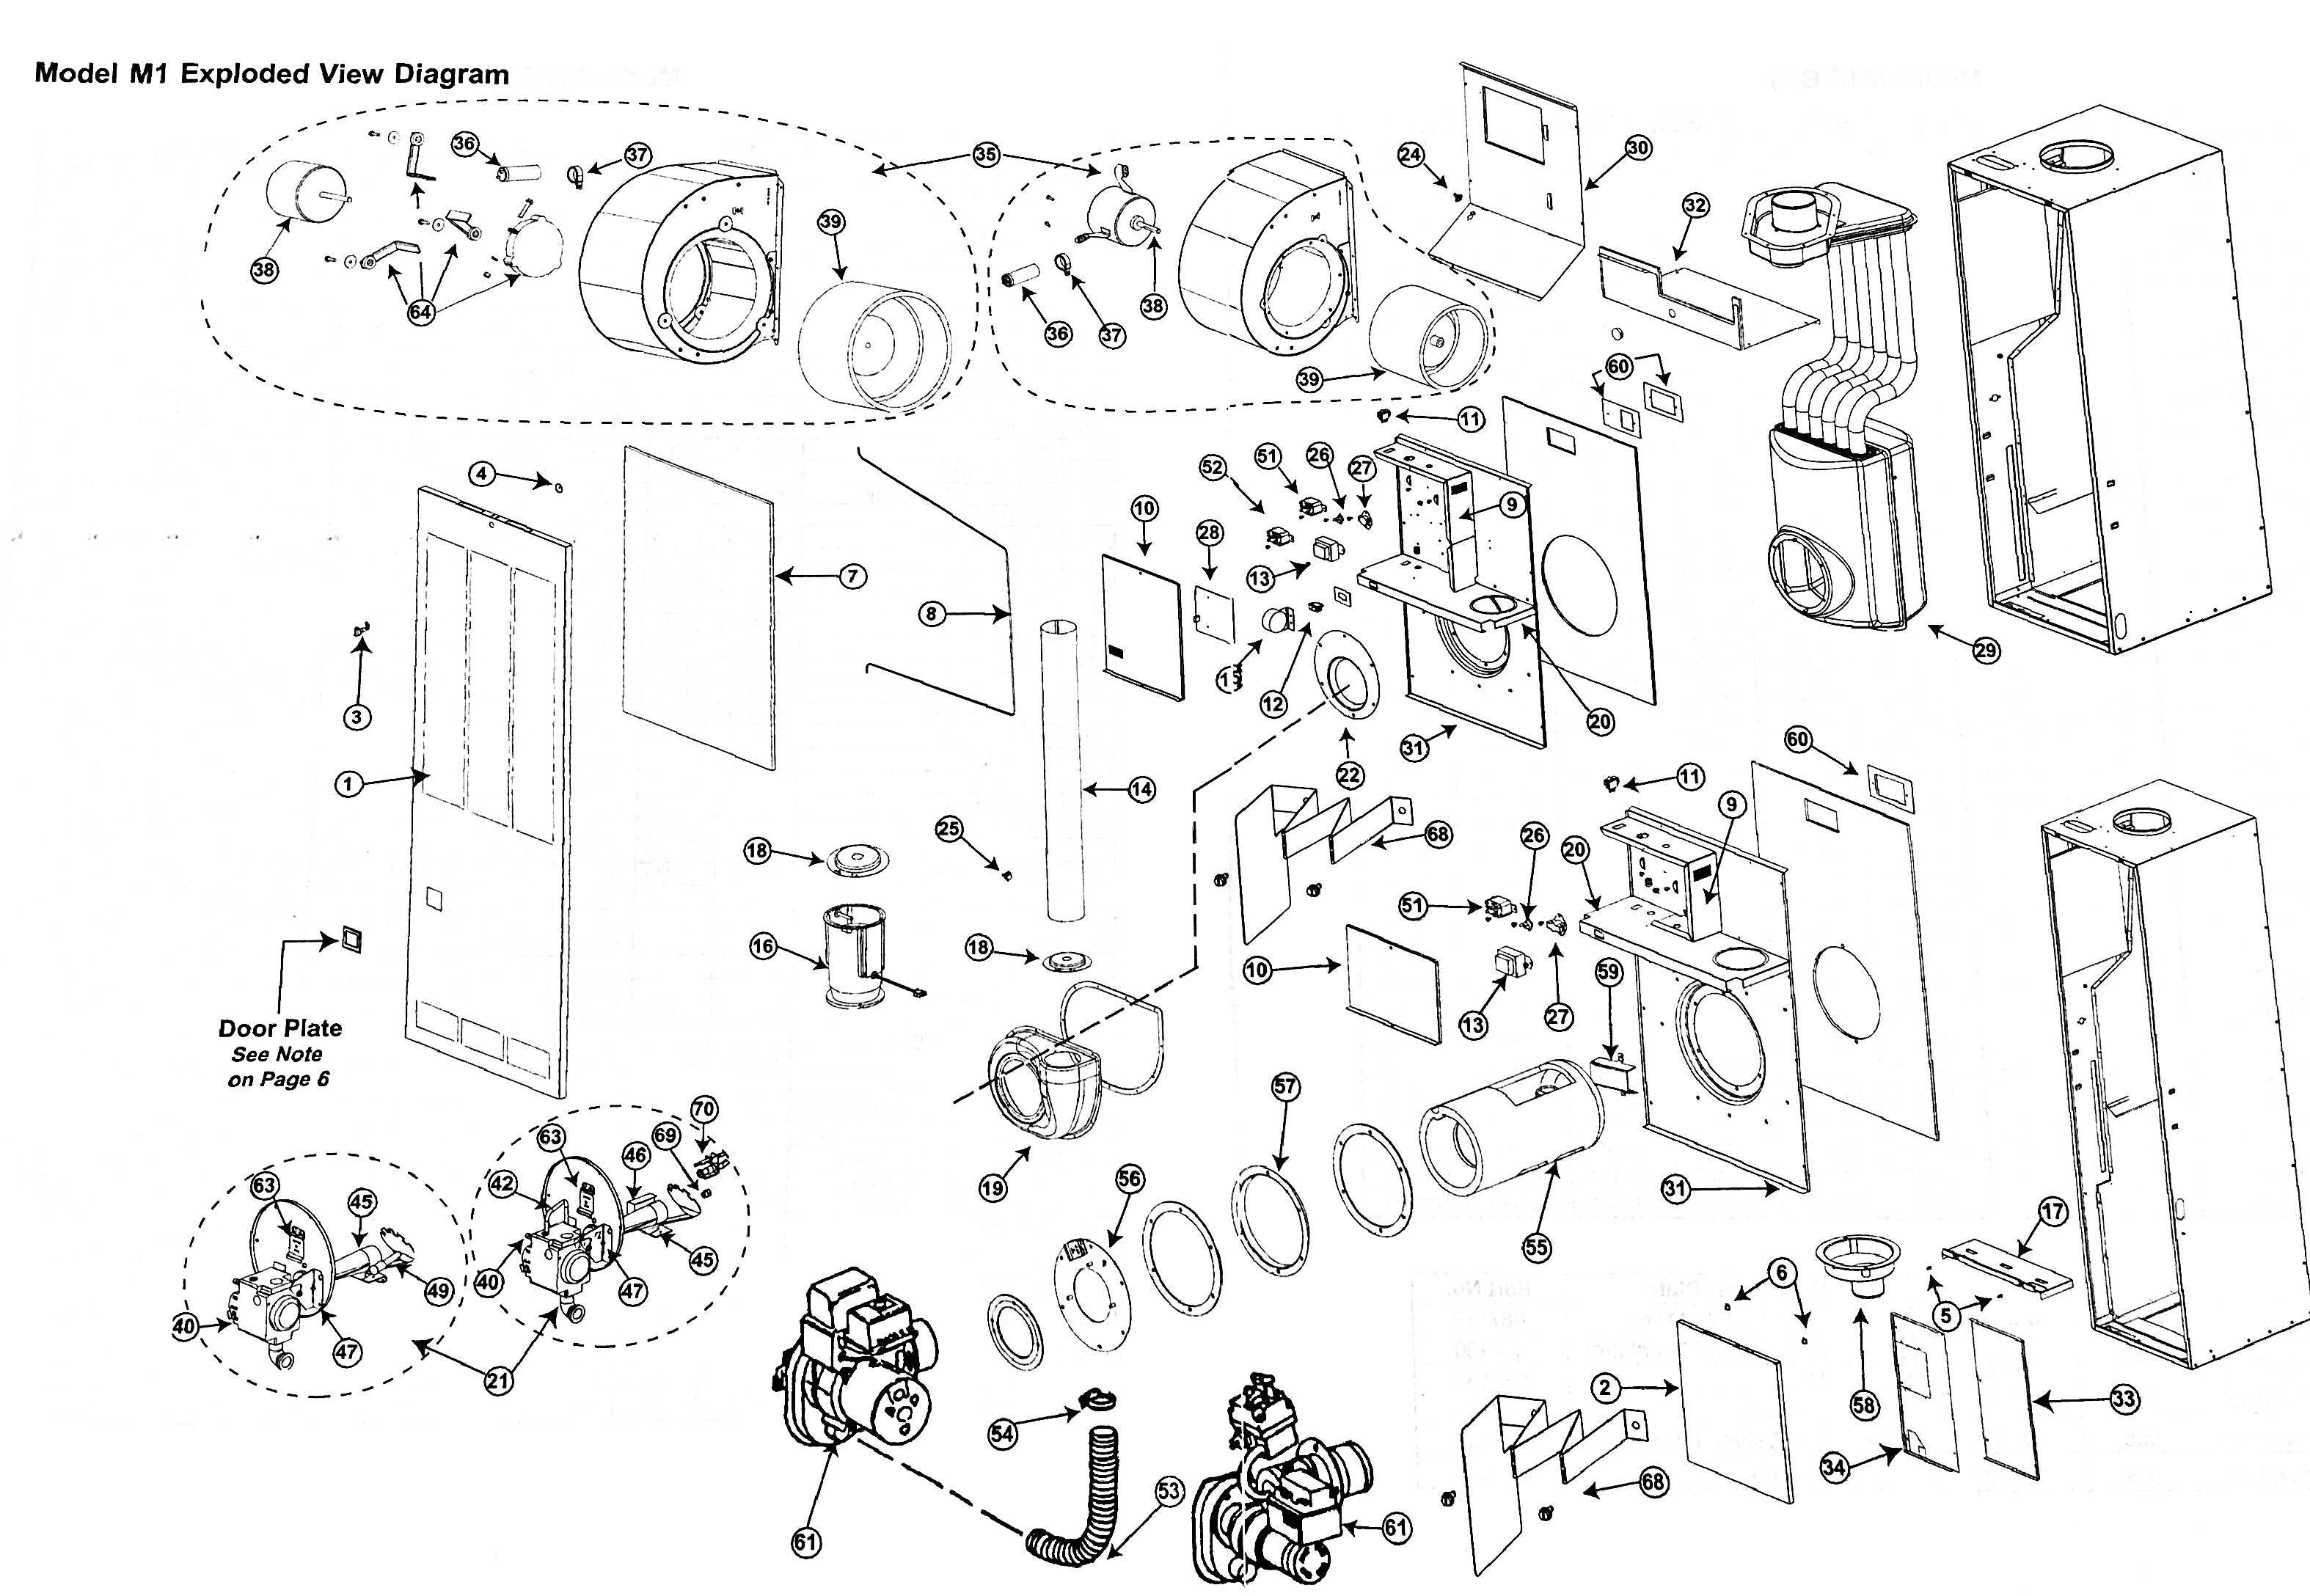 M1Diagram_df13b834 94d2 4815 80b8 ffbe24703bc2?3401666538859291709 m1mb077 nordyne gas furnace parts hvacpartstore nordyne wiring diagram at reclaimingppi.co